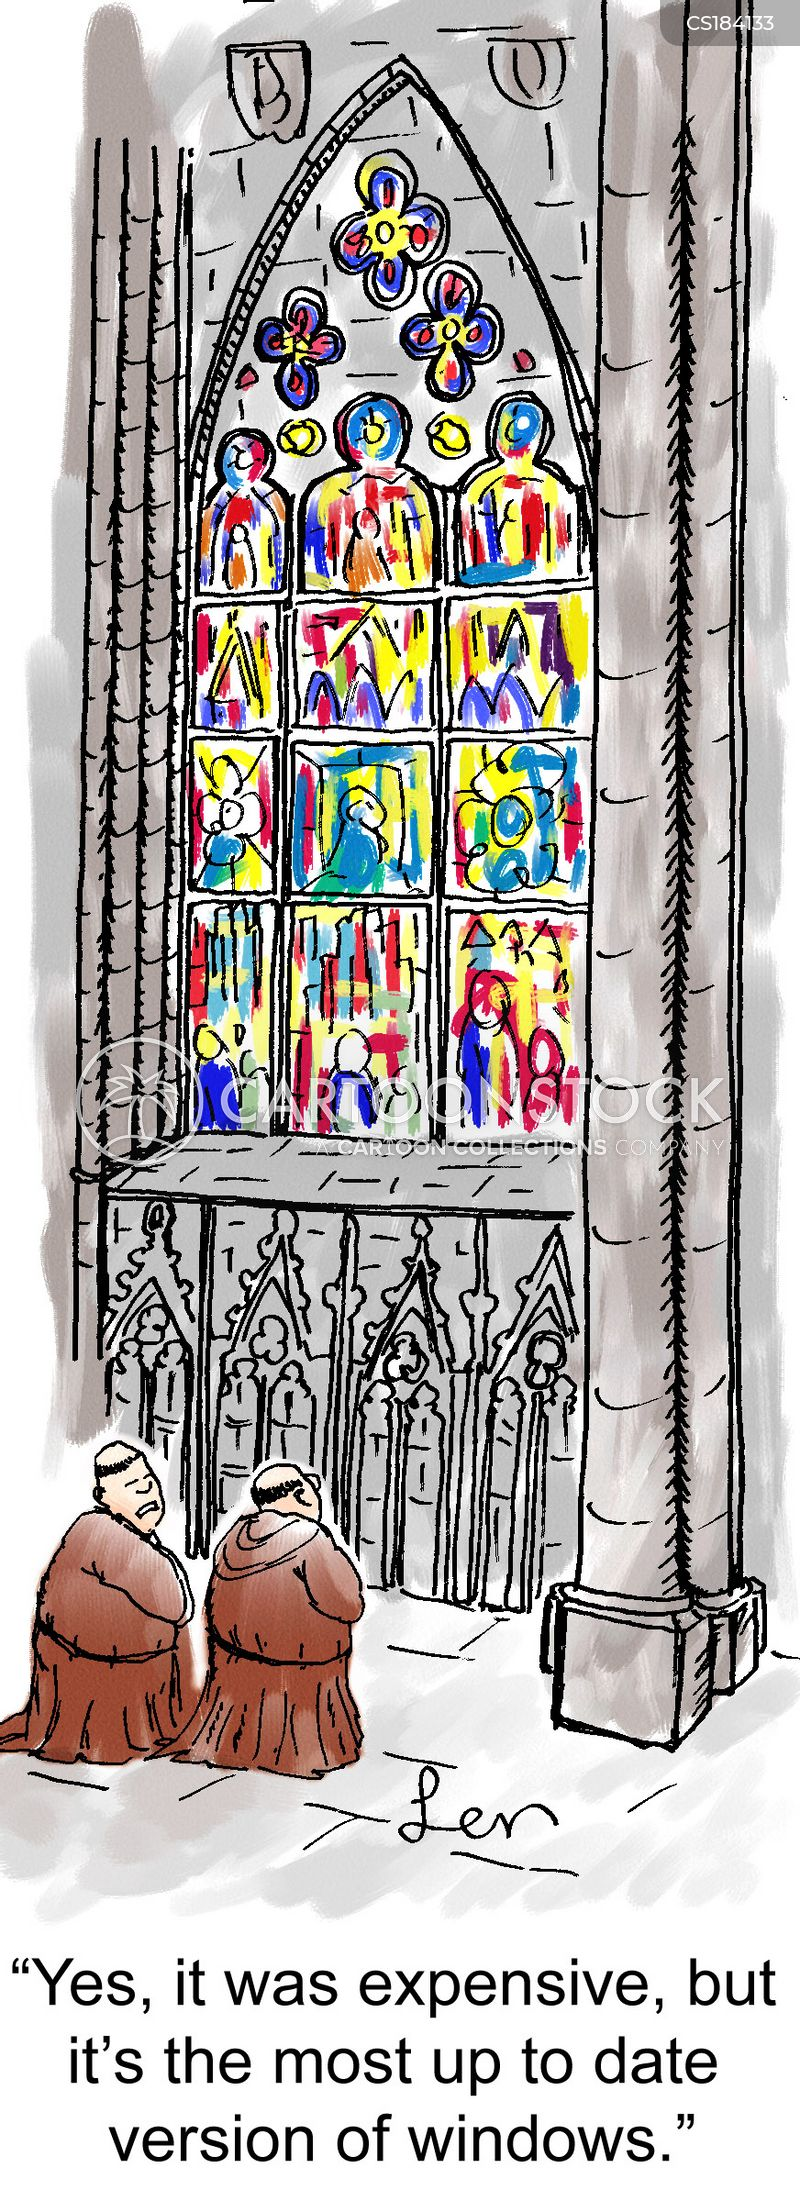 stained glass windows cartoon